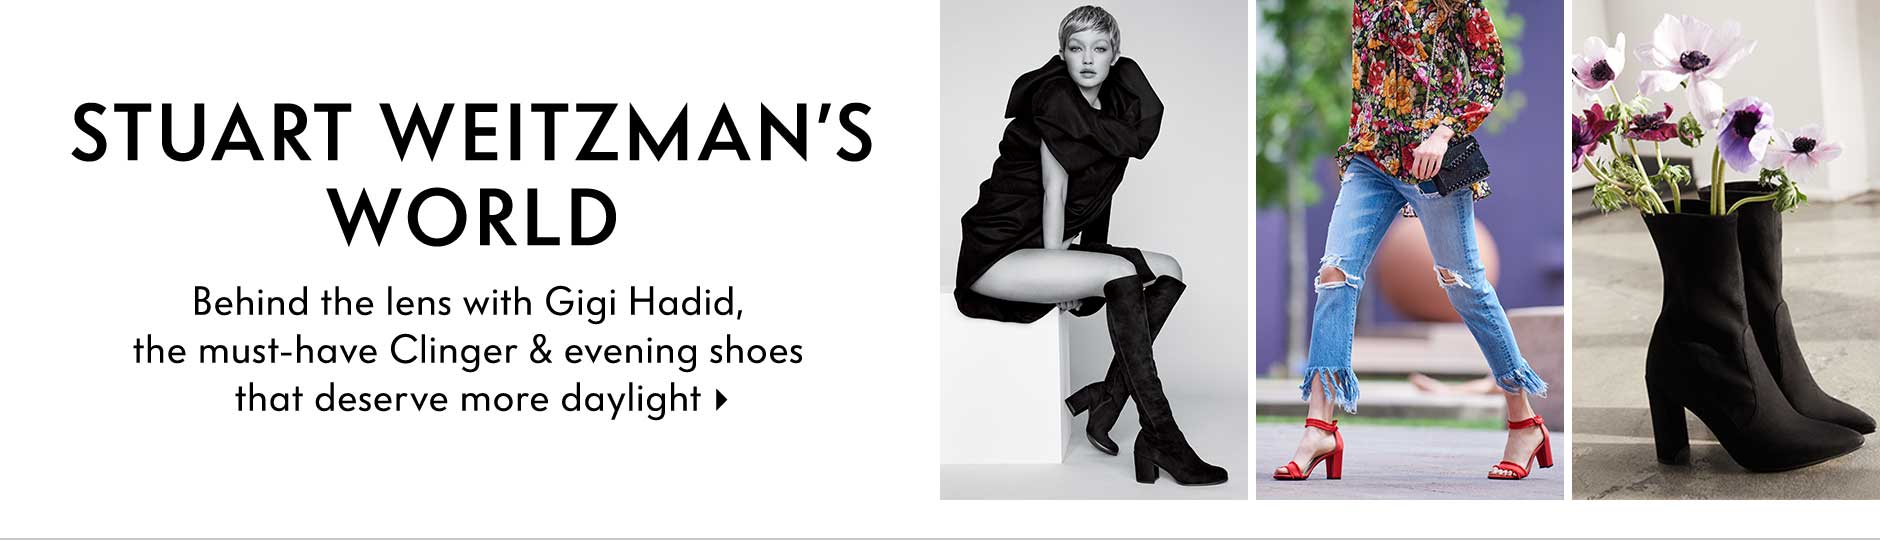 Stuart Weitzman's World - behind the lens with Gigi Hadid, the must-have clinger & evening shoes that deserve more daylight